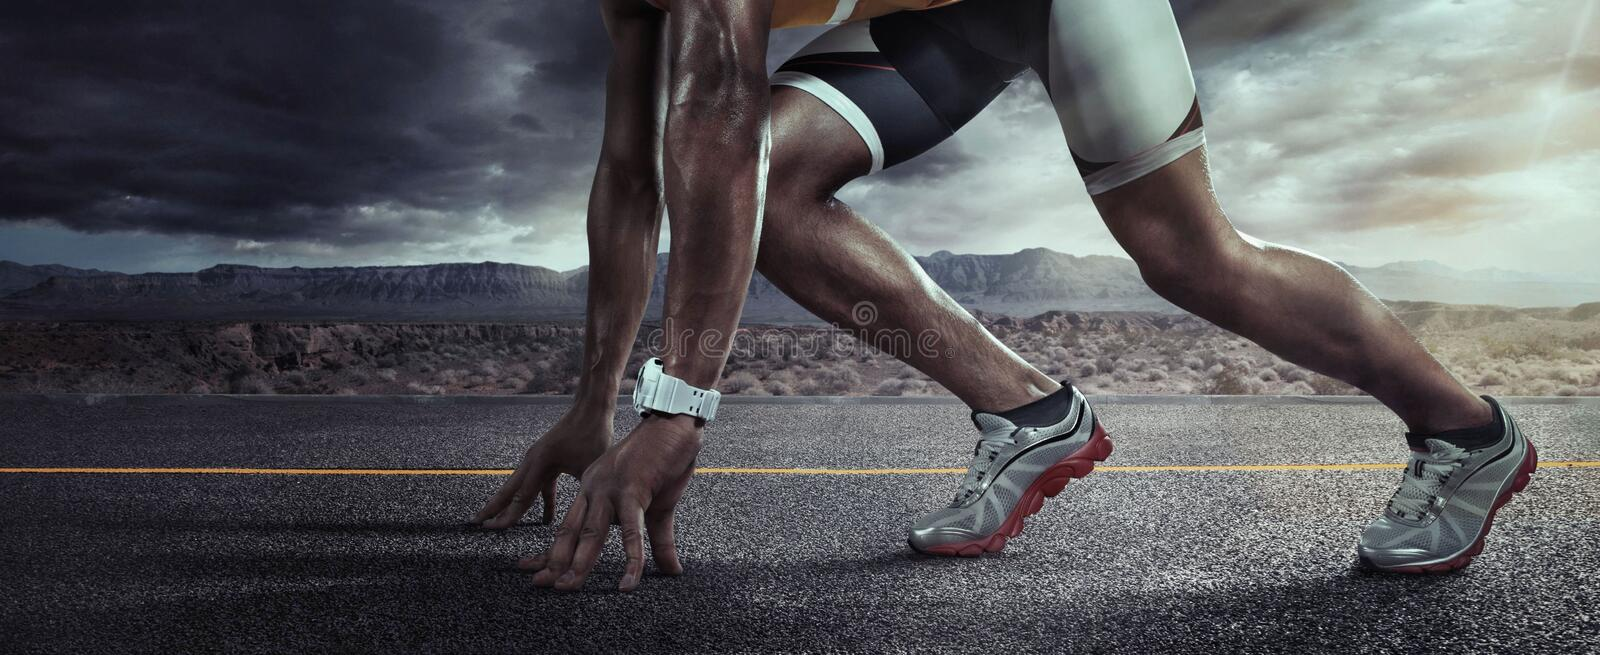 Sports background. Runner feet running on road closeup on shoe. Start line royalty free stock image